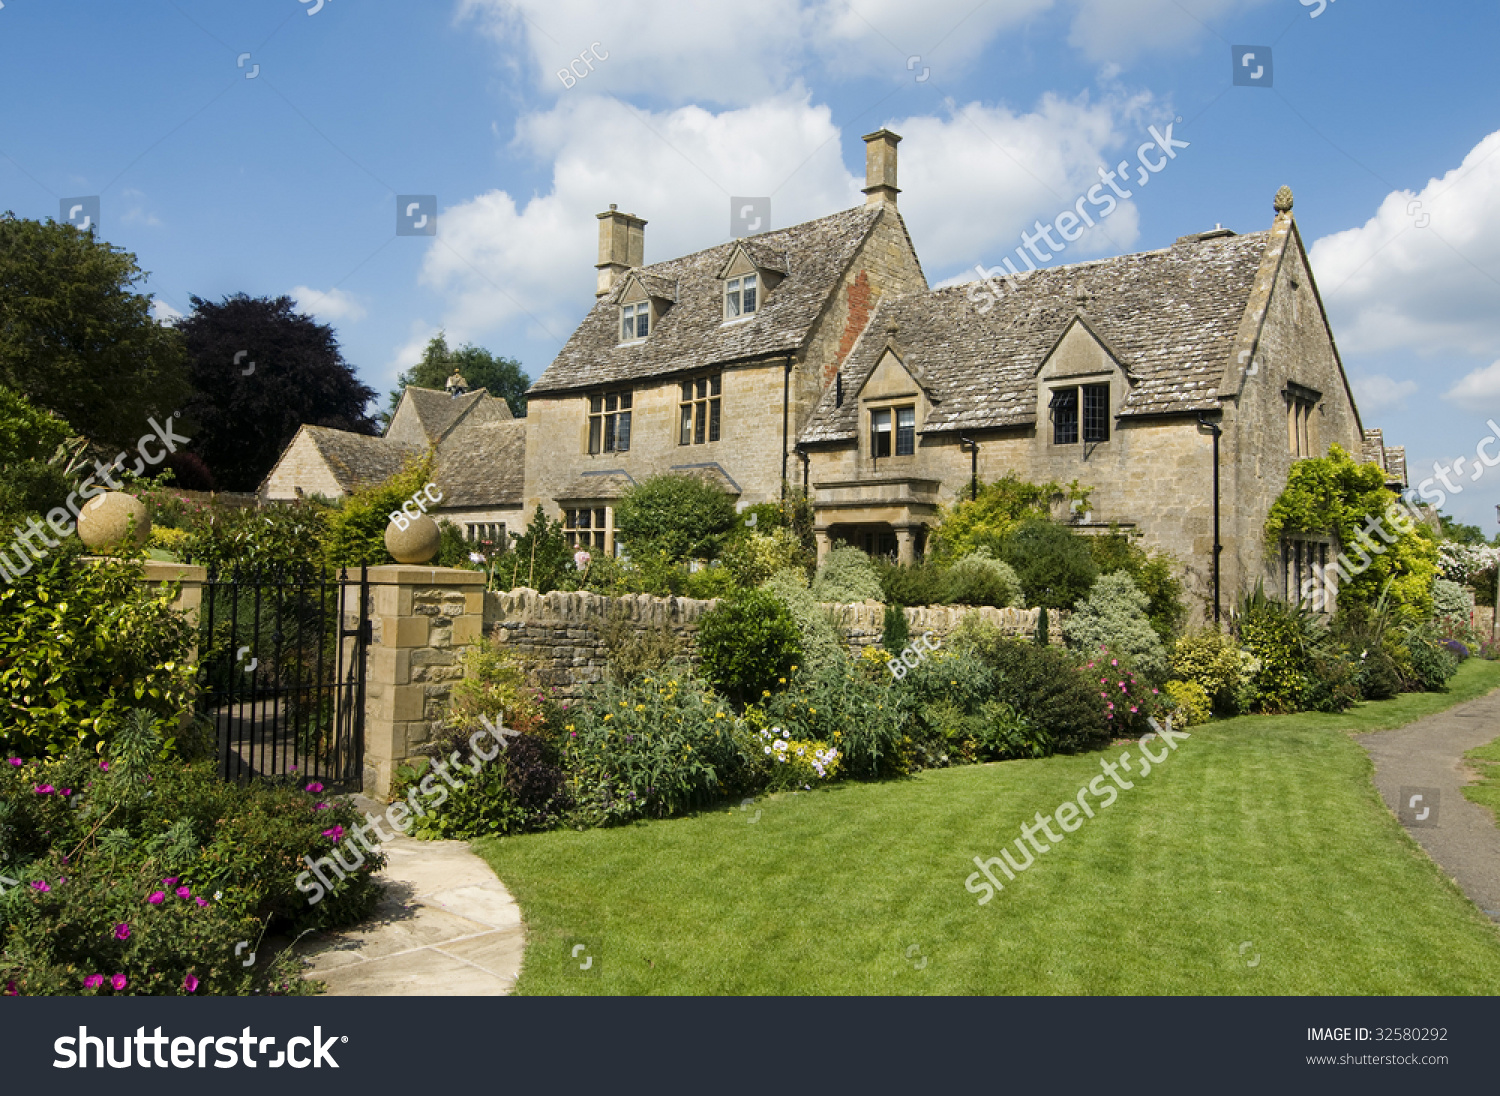 Beautiful rural cotsworld stone homes countryside stock for Rural home builders